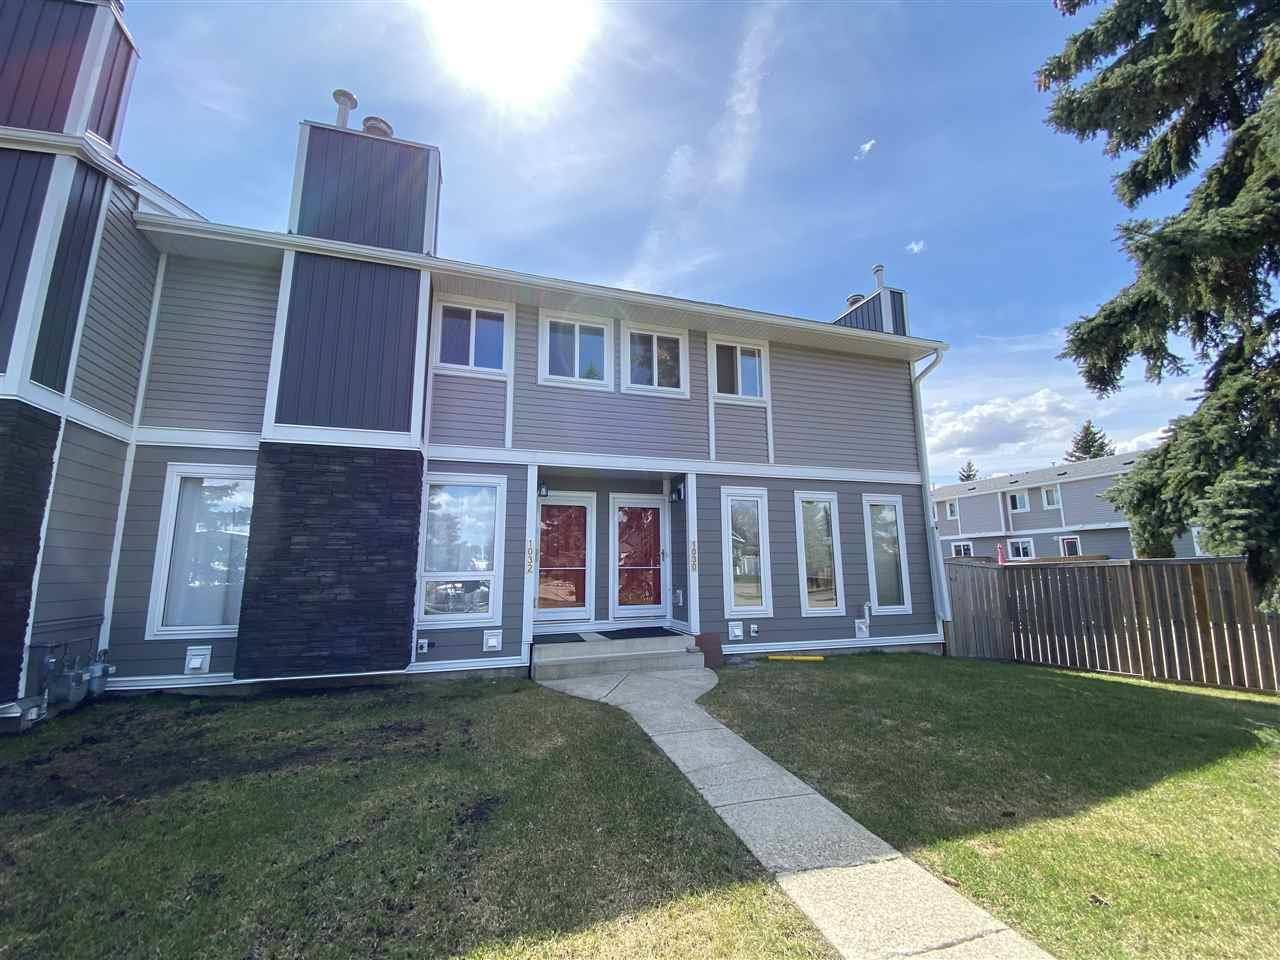 Townhouse for sale at 1032 Lakewood Rd Nw Edmonton Alberta - MLS: E4188450